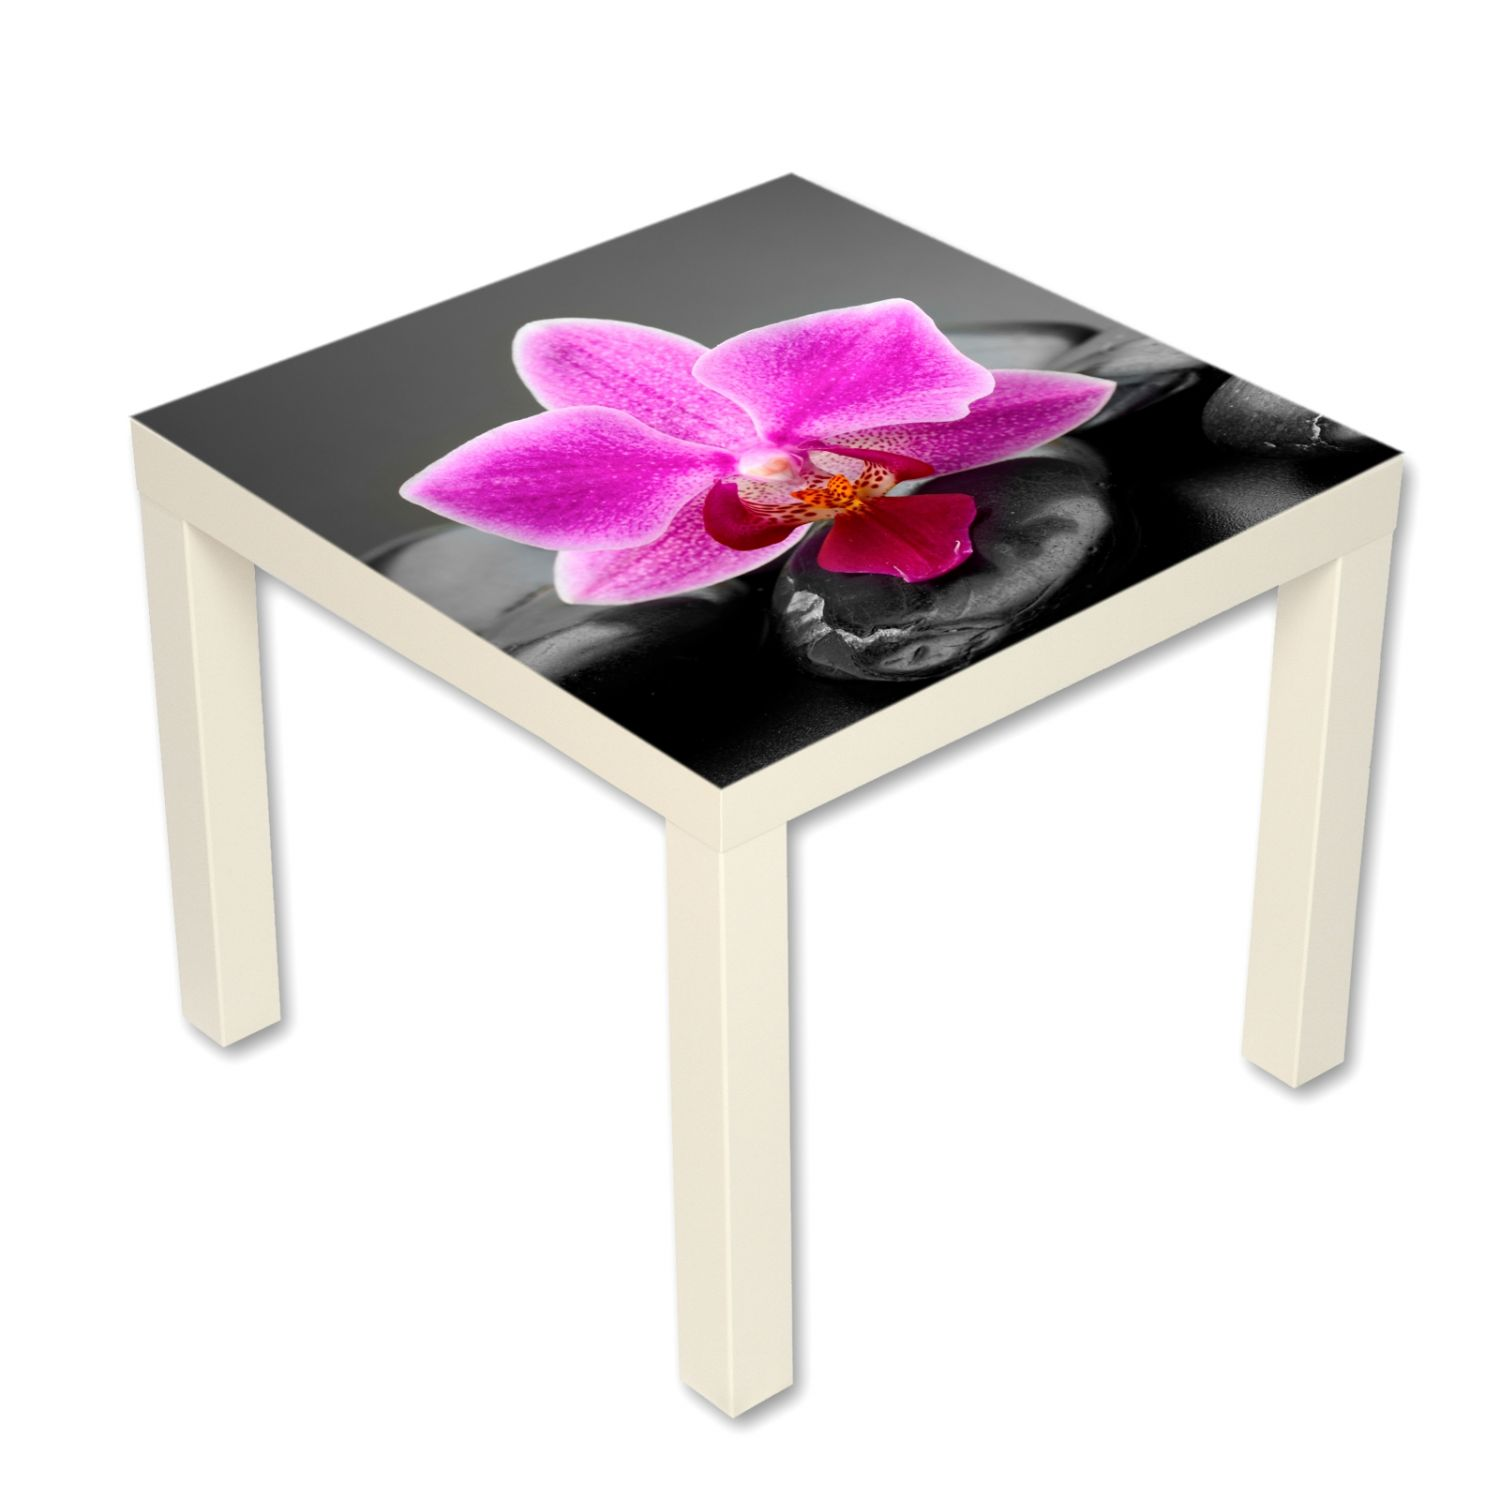 beistelltisch couchtisch mit motiv blumen rosa orchidee ebay. Black Bedroom Furniture Sets. Home Design Ideas